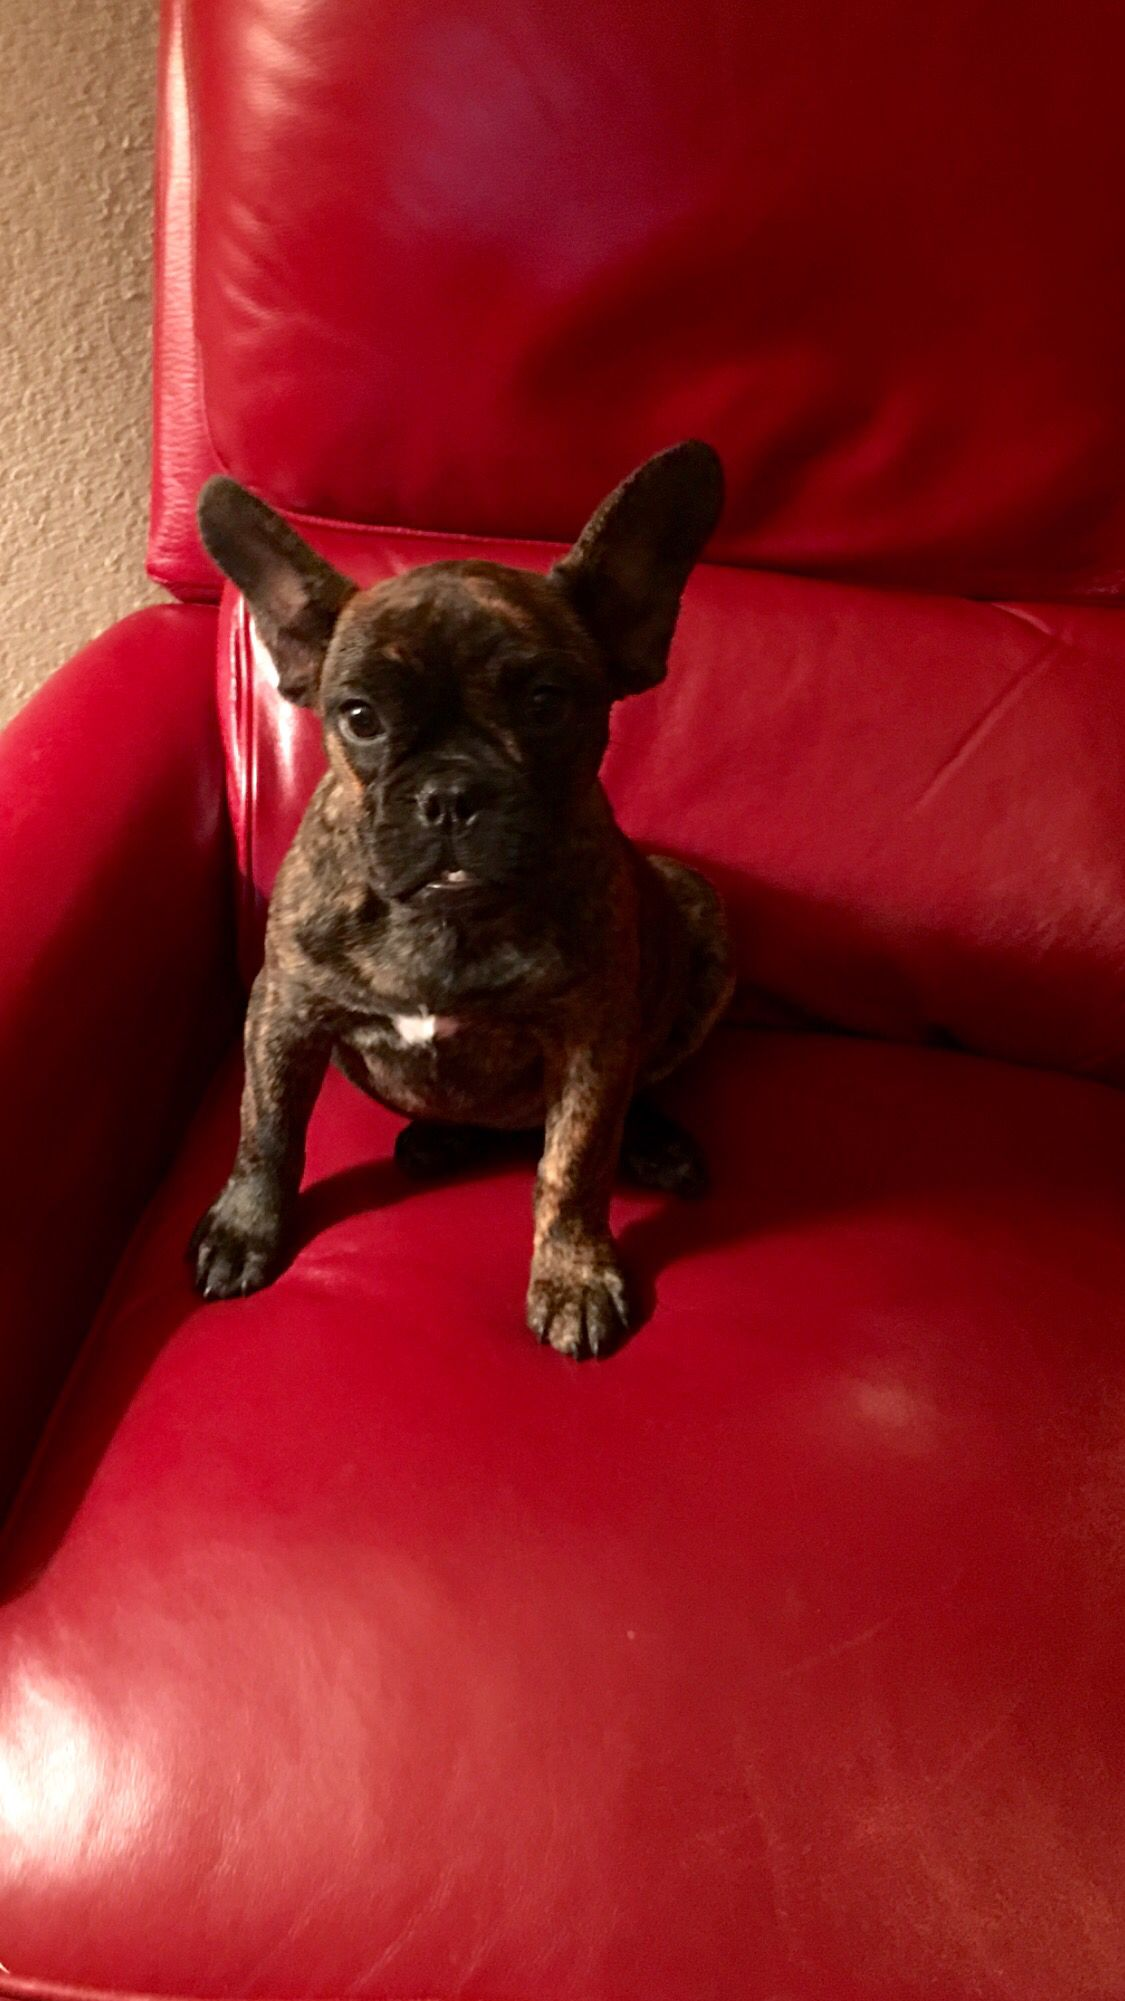 My new 4month old puppy Lucy, French Bulldogdark brindle